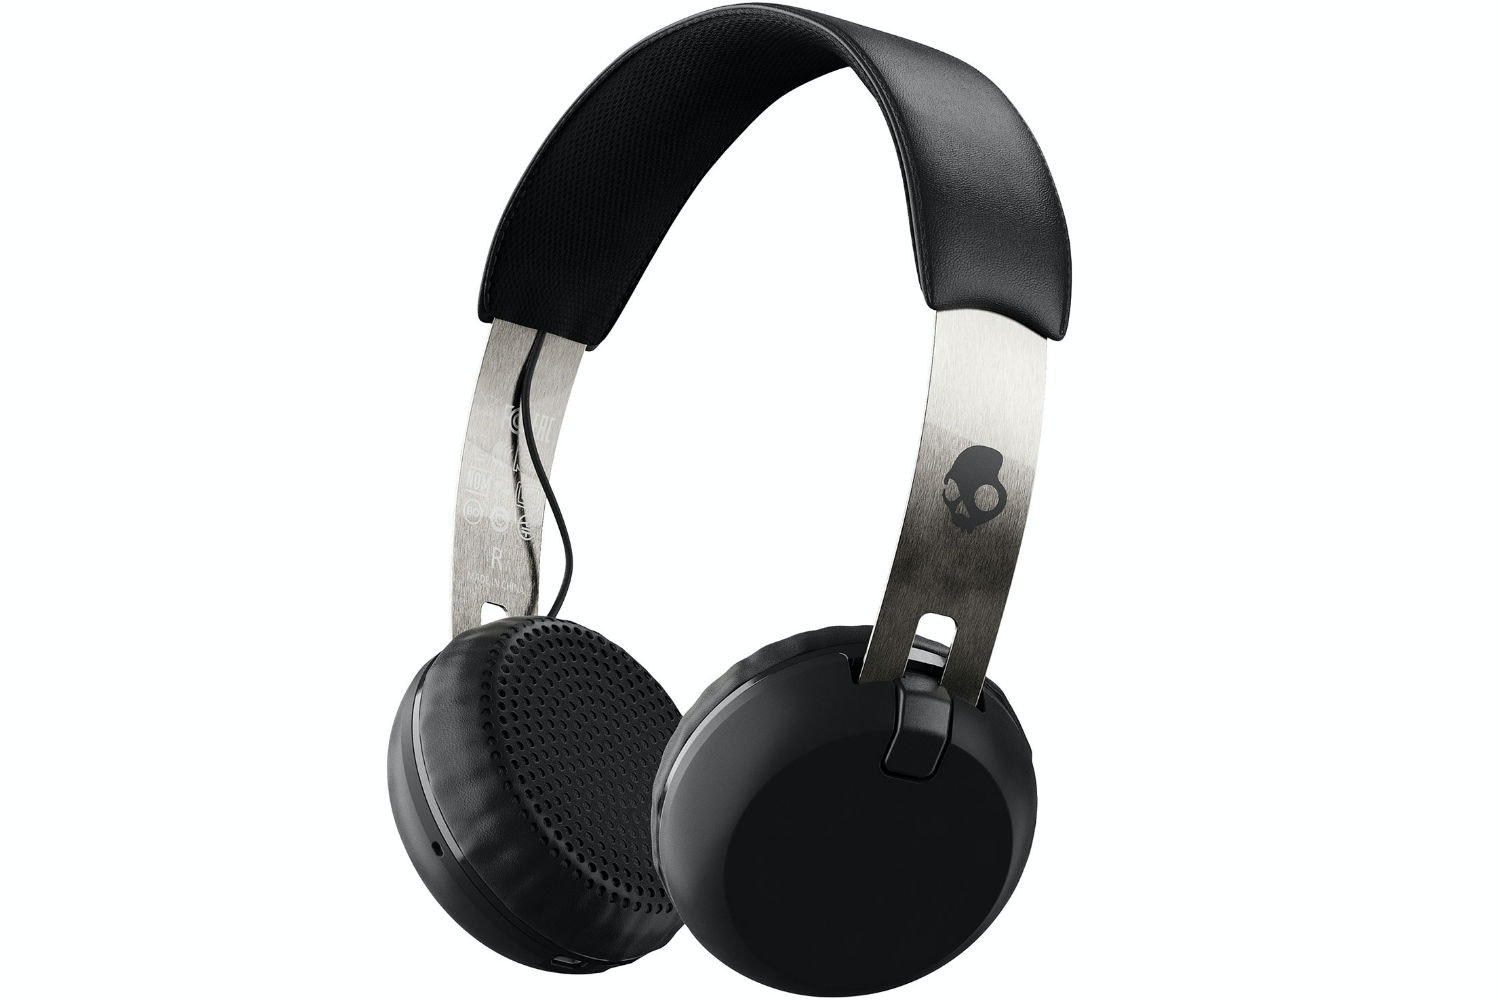 Skullcandy Grind Wireless Headphones Black & Chrome